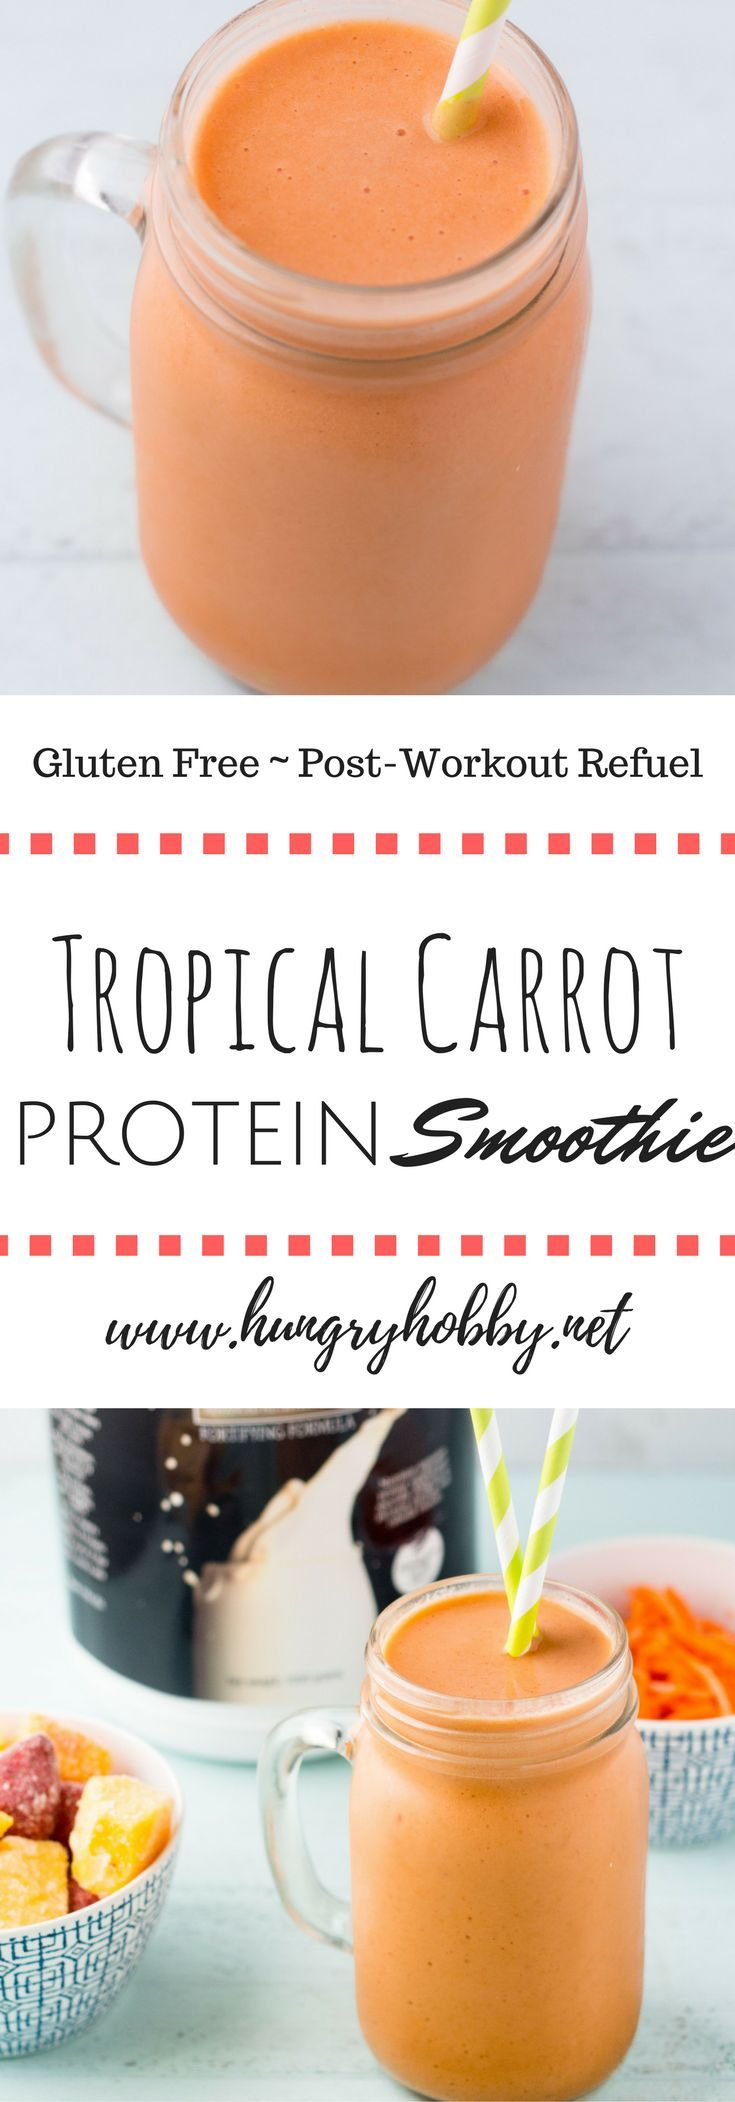 Creamy Tropical Carrot Protein Smoothie is a refreshing breakfast or post workout snack to cool you down with a burst of creamy tropical flavor so good you'll think you are on vacation in the tropics! #millenniumblend #ad via @hungryhobby